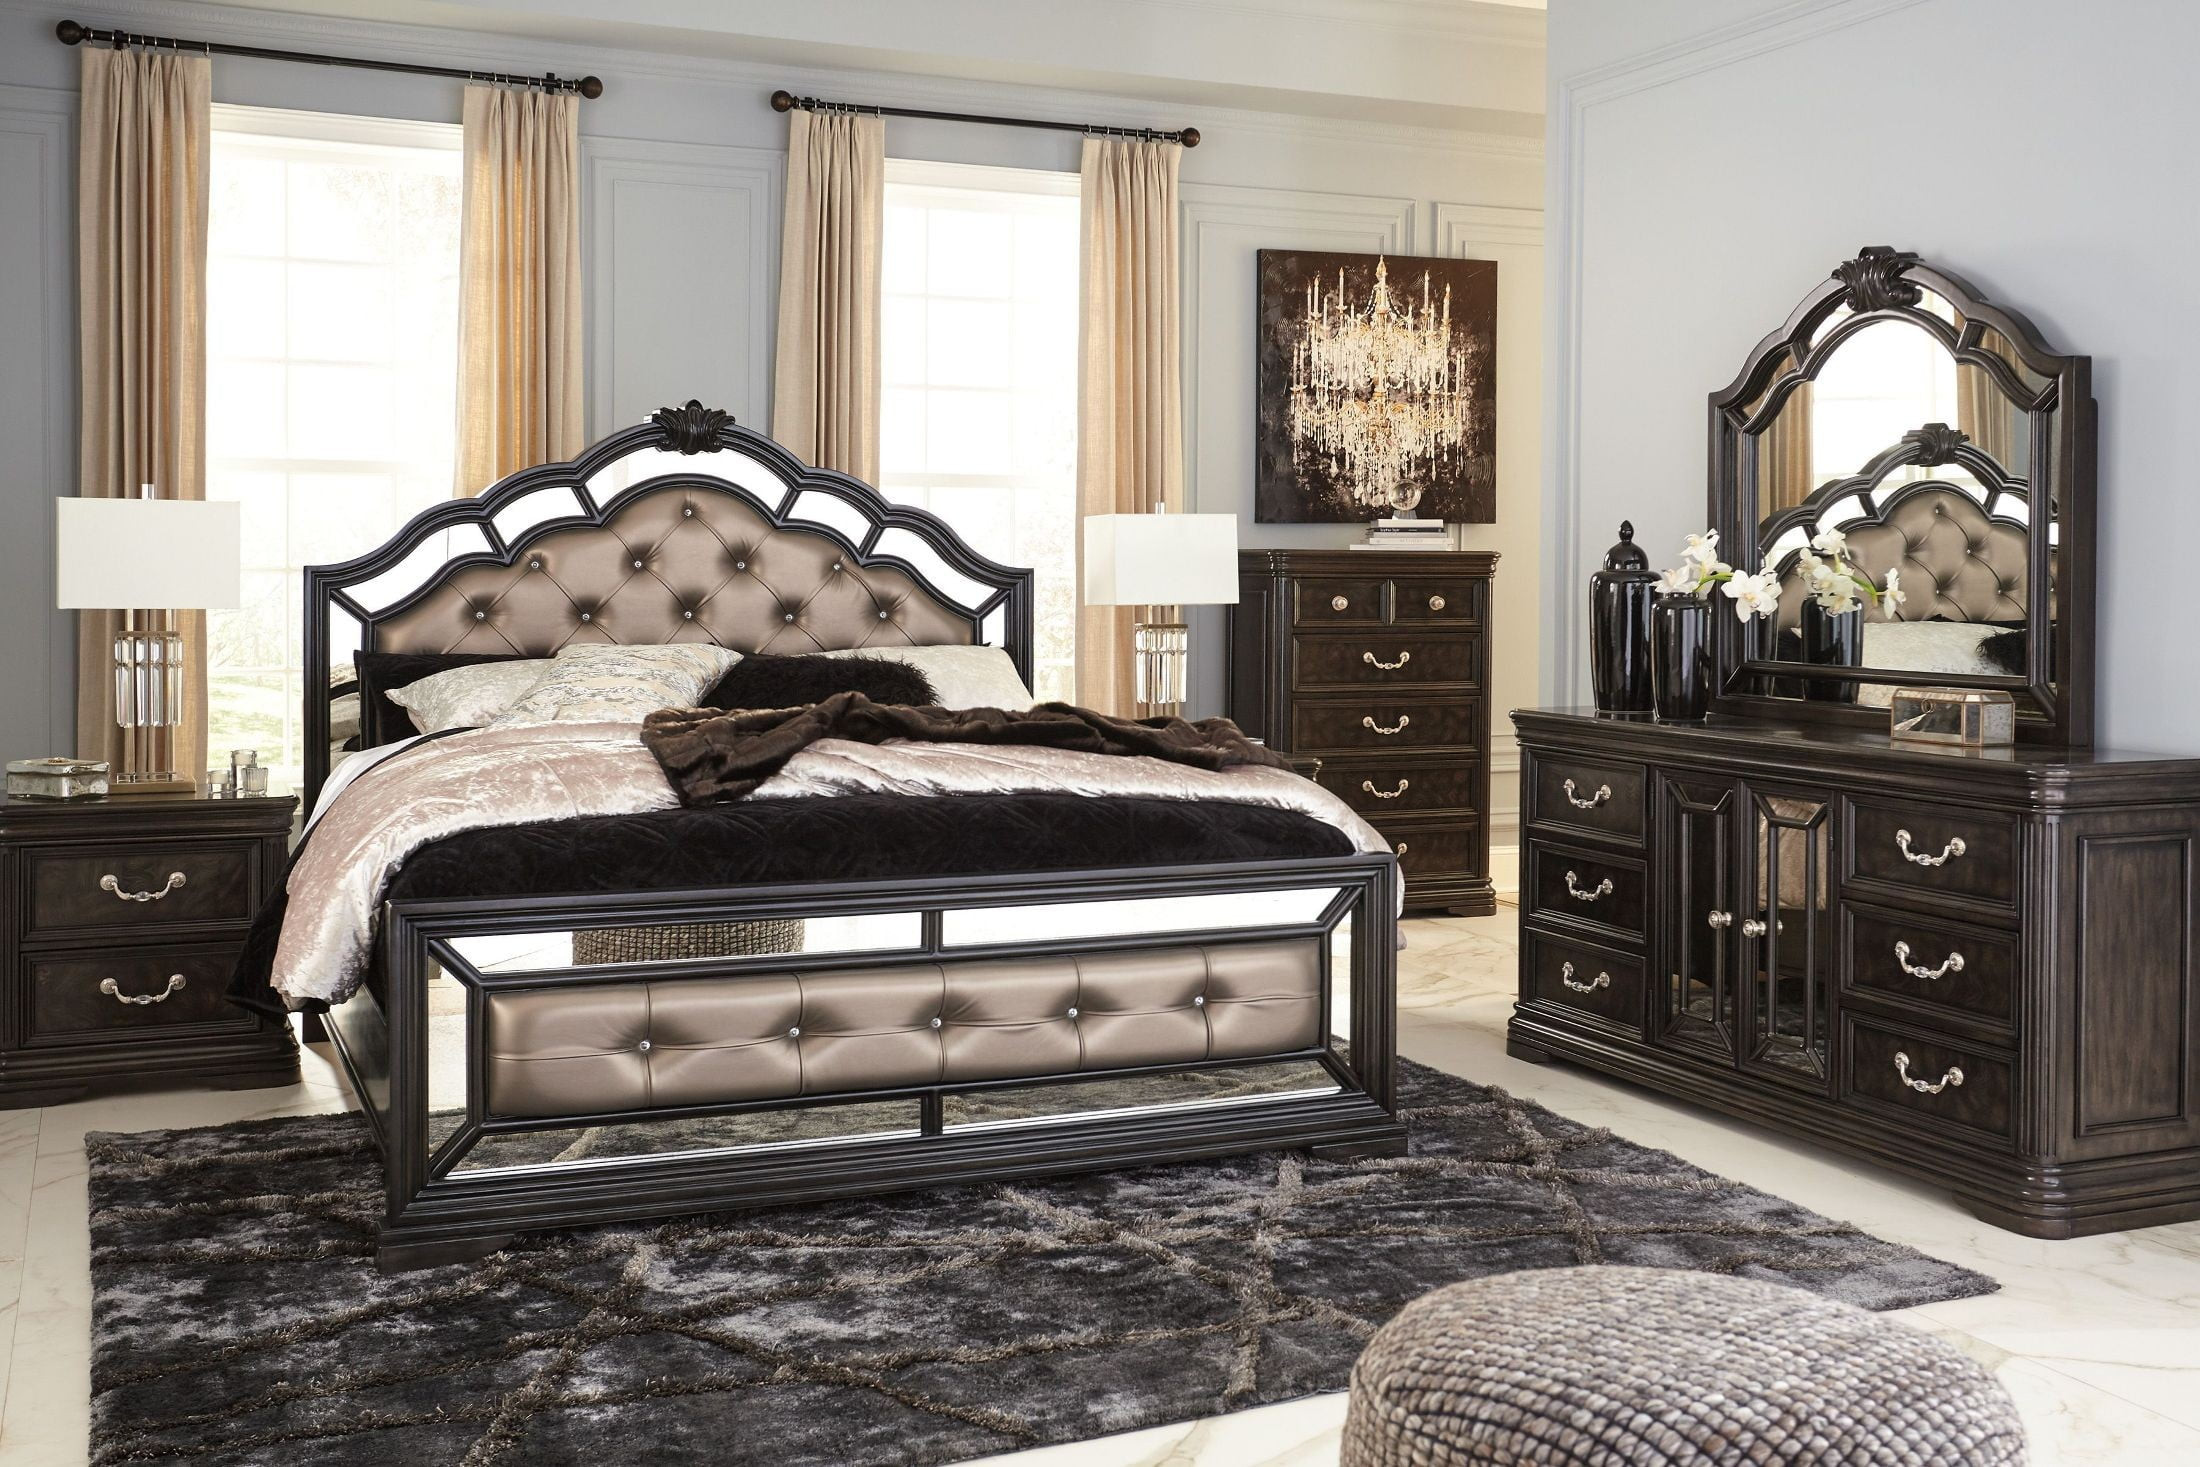 Best ideas about Ashley Bedroom Furniture . Save or Pin Quinshire Brown Upholstered Panel Bedroom Set from Ashley Now.